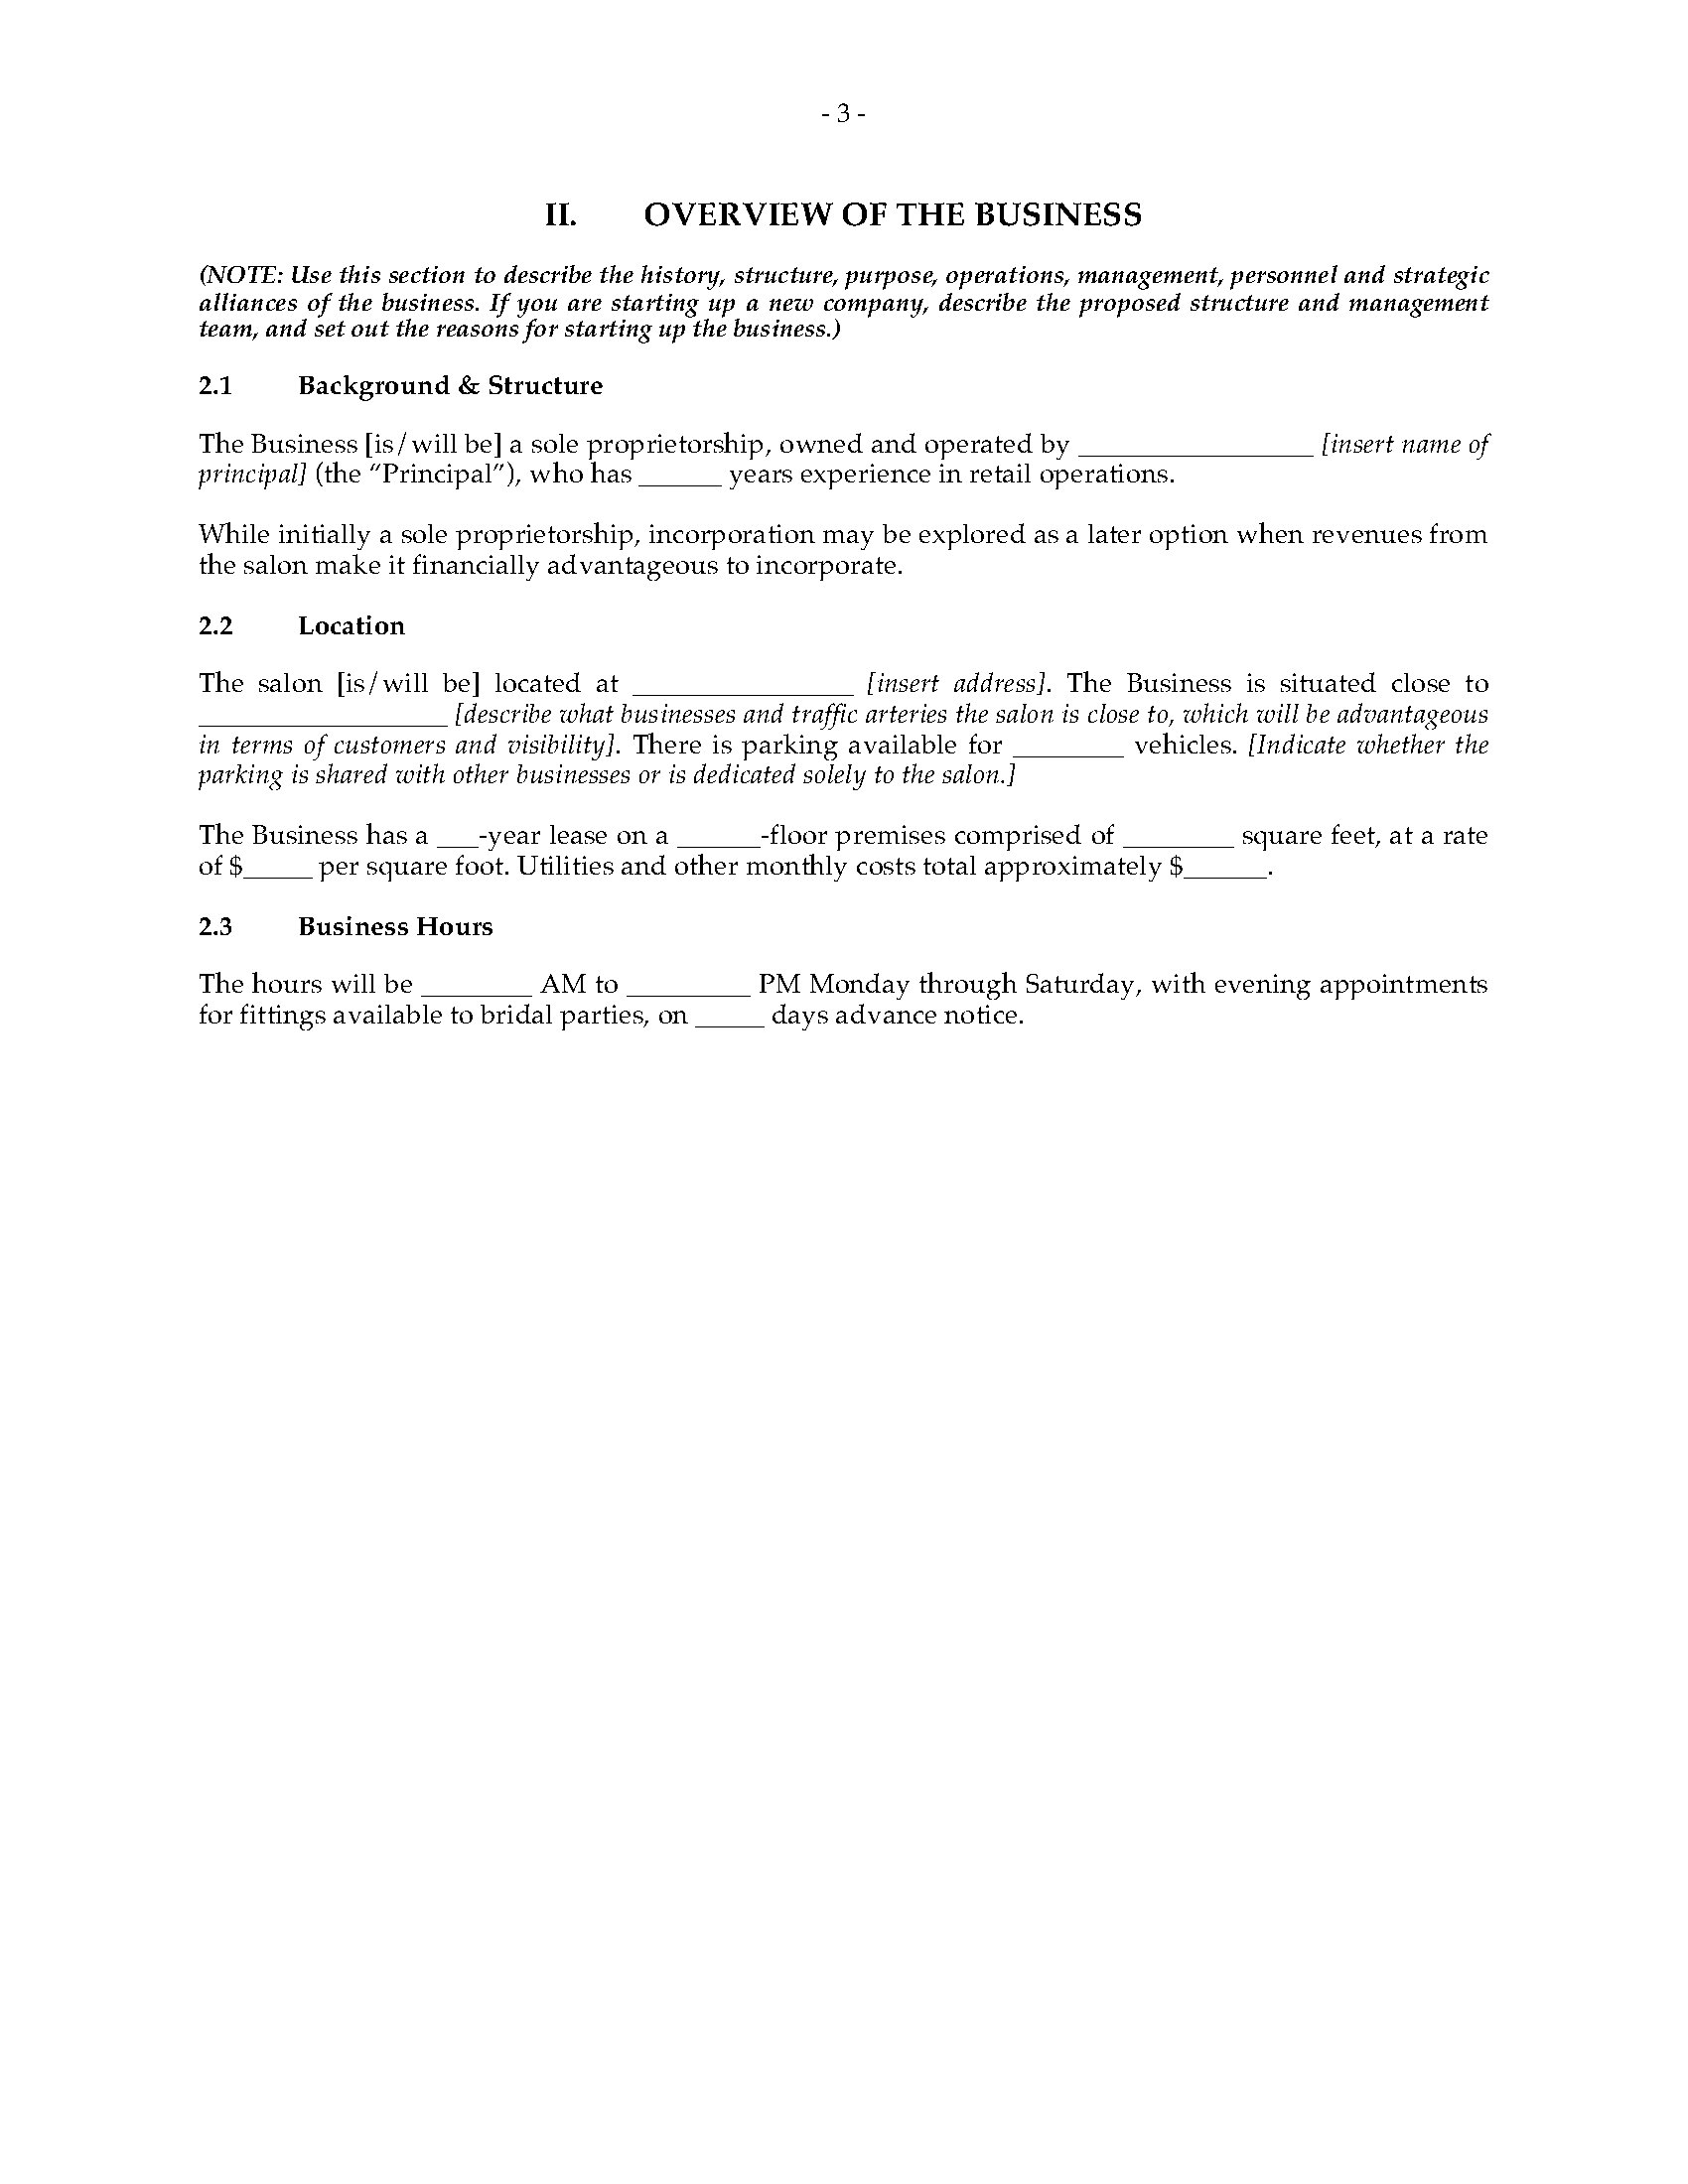 Bridal salon business plan legal forms and business for A salon business plan